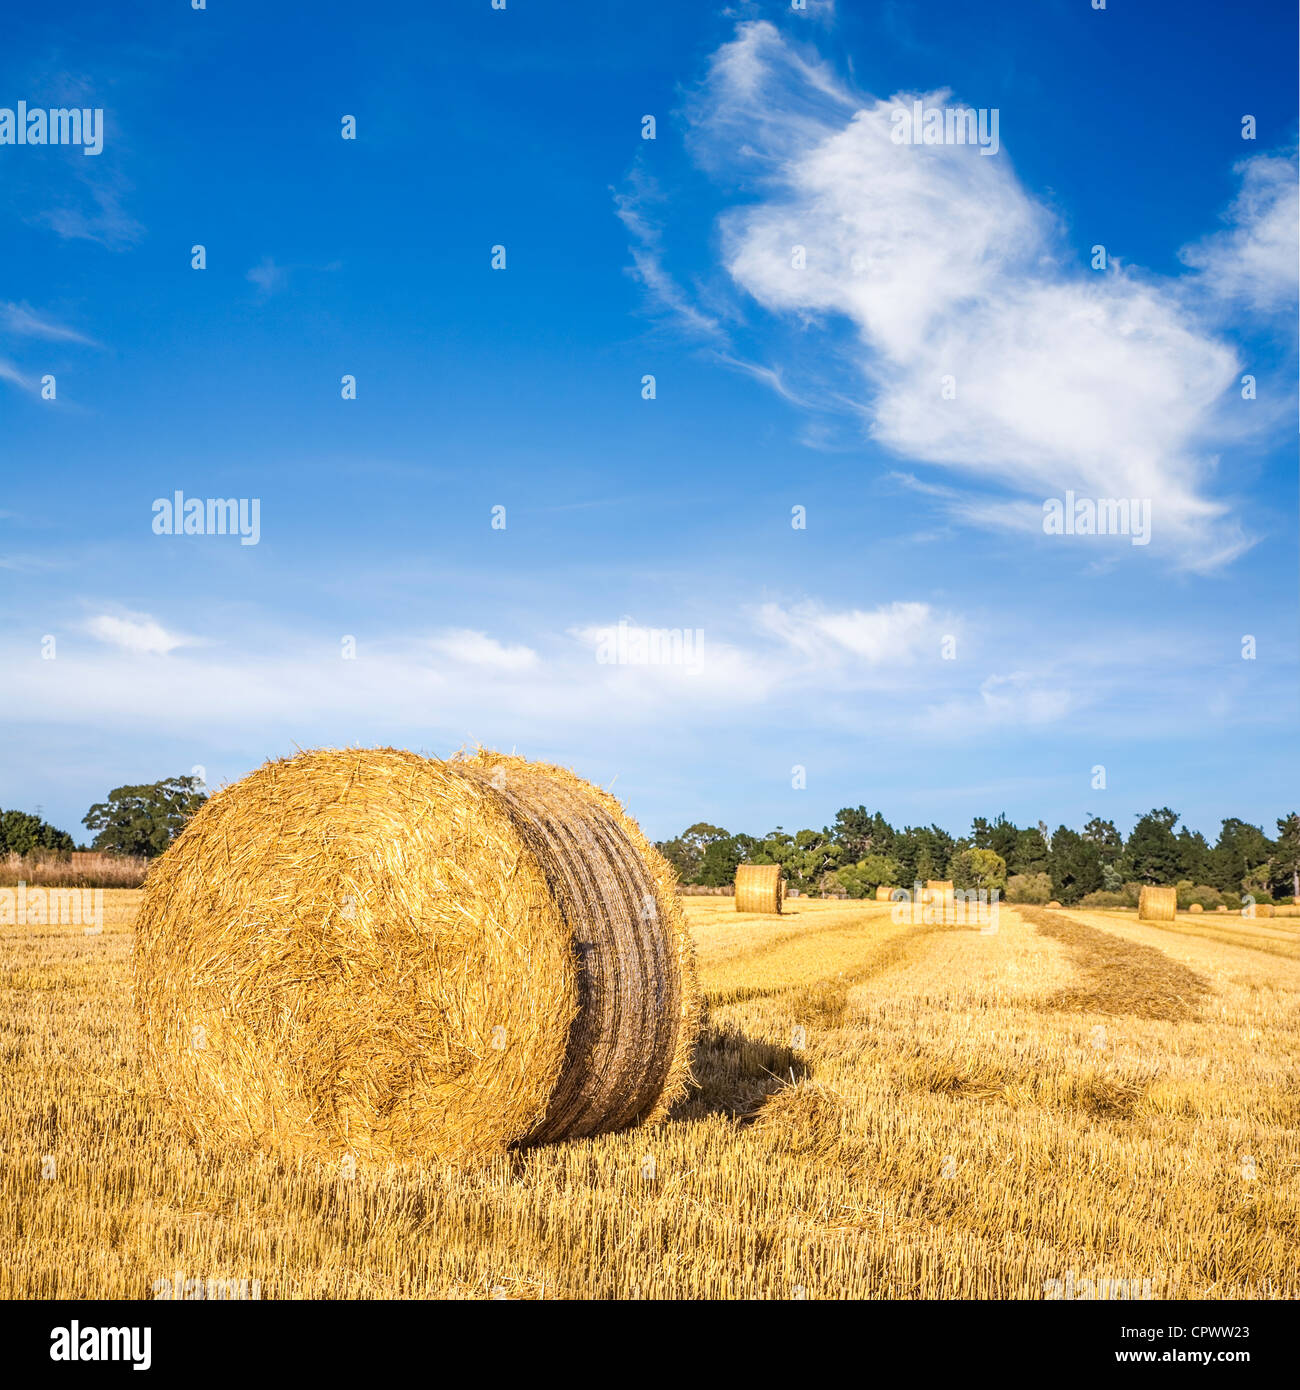 Hay bales under a cerulean blue sky means summer in Canterbury, New Zealand. - Stock Image